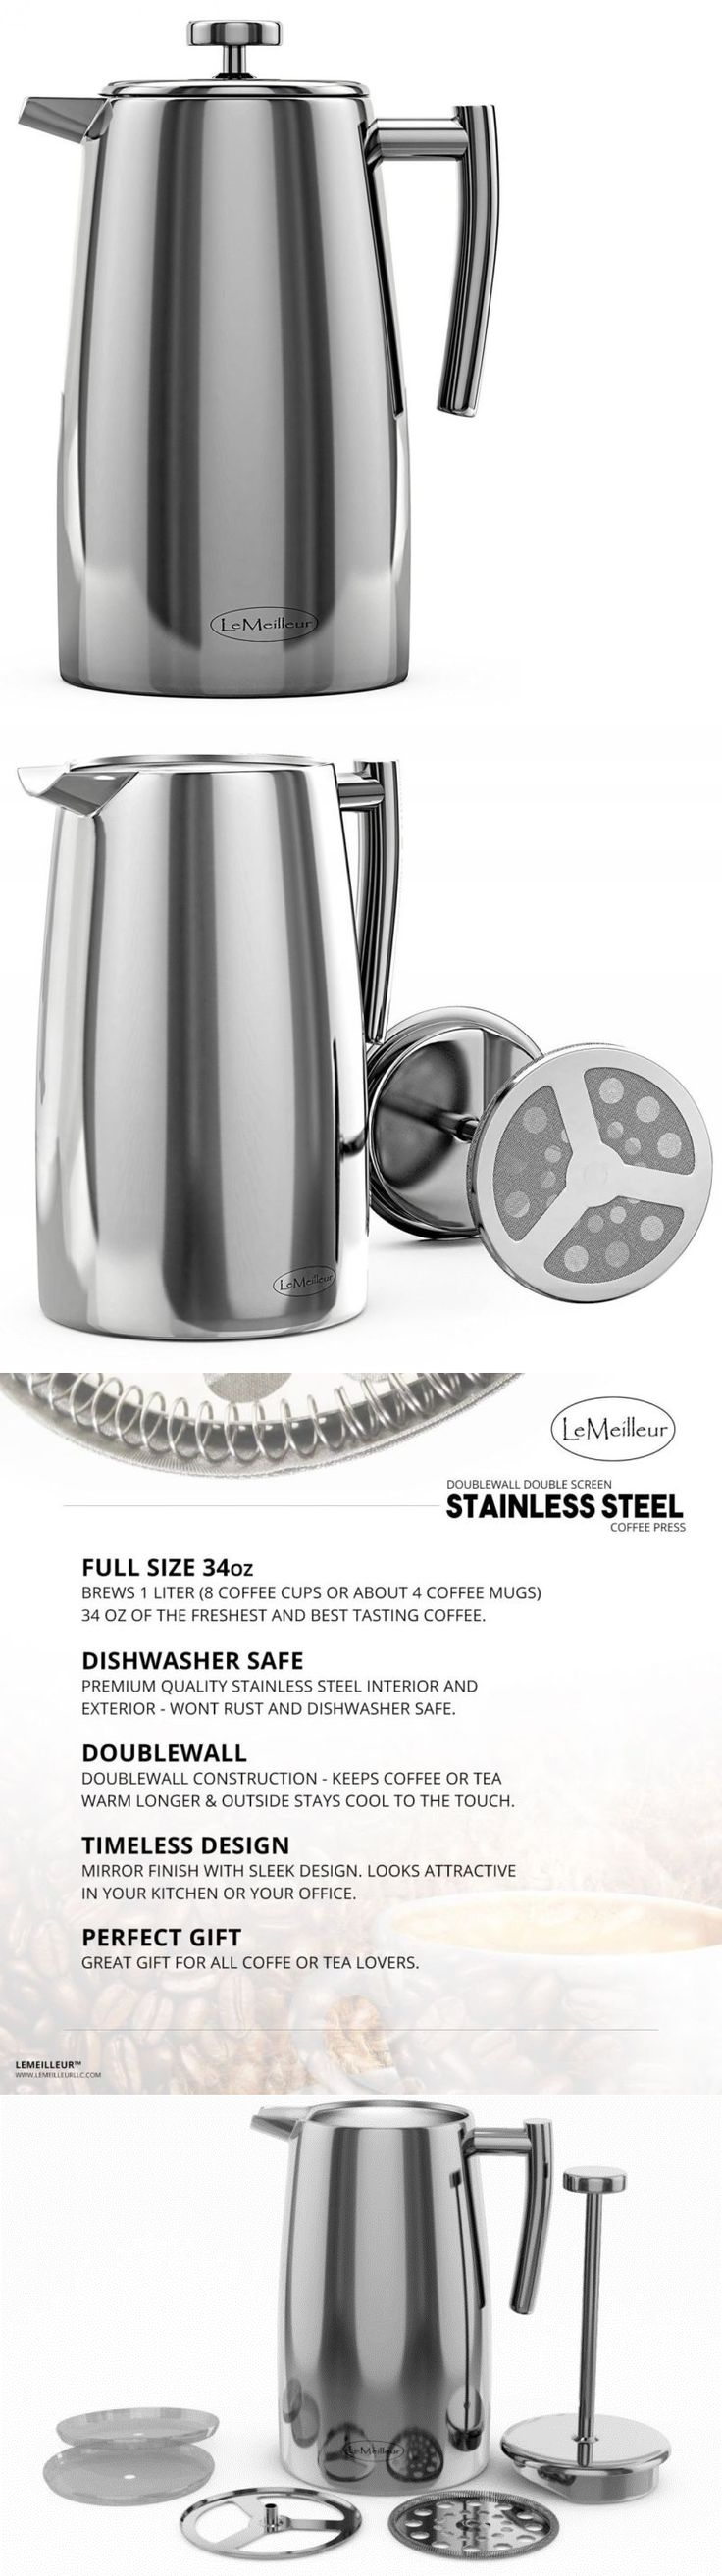 Bed bath beyond french press - French Presses 98851 French Press Coffee Maker Stainless Steel Press Double Wall Double